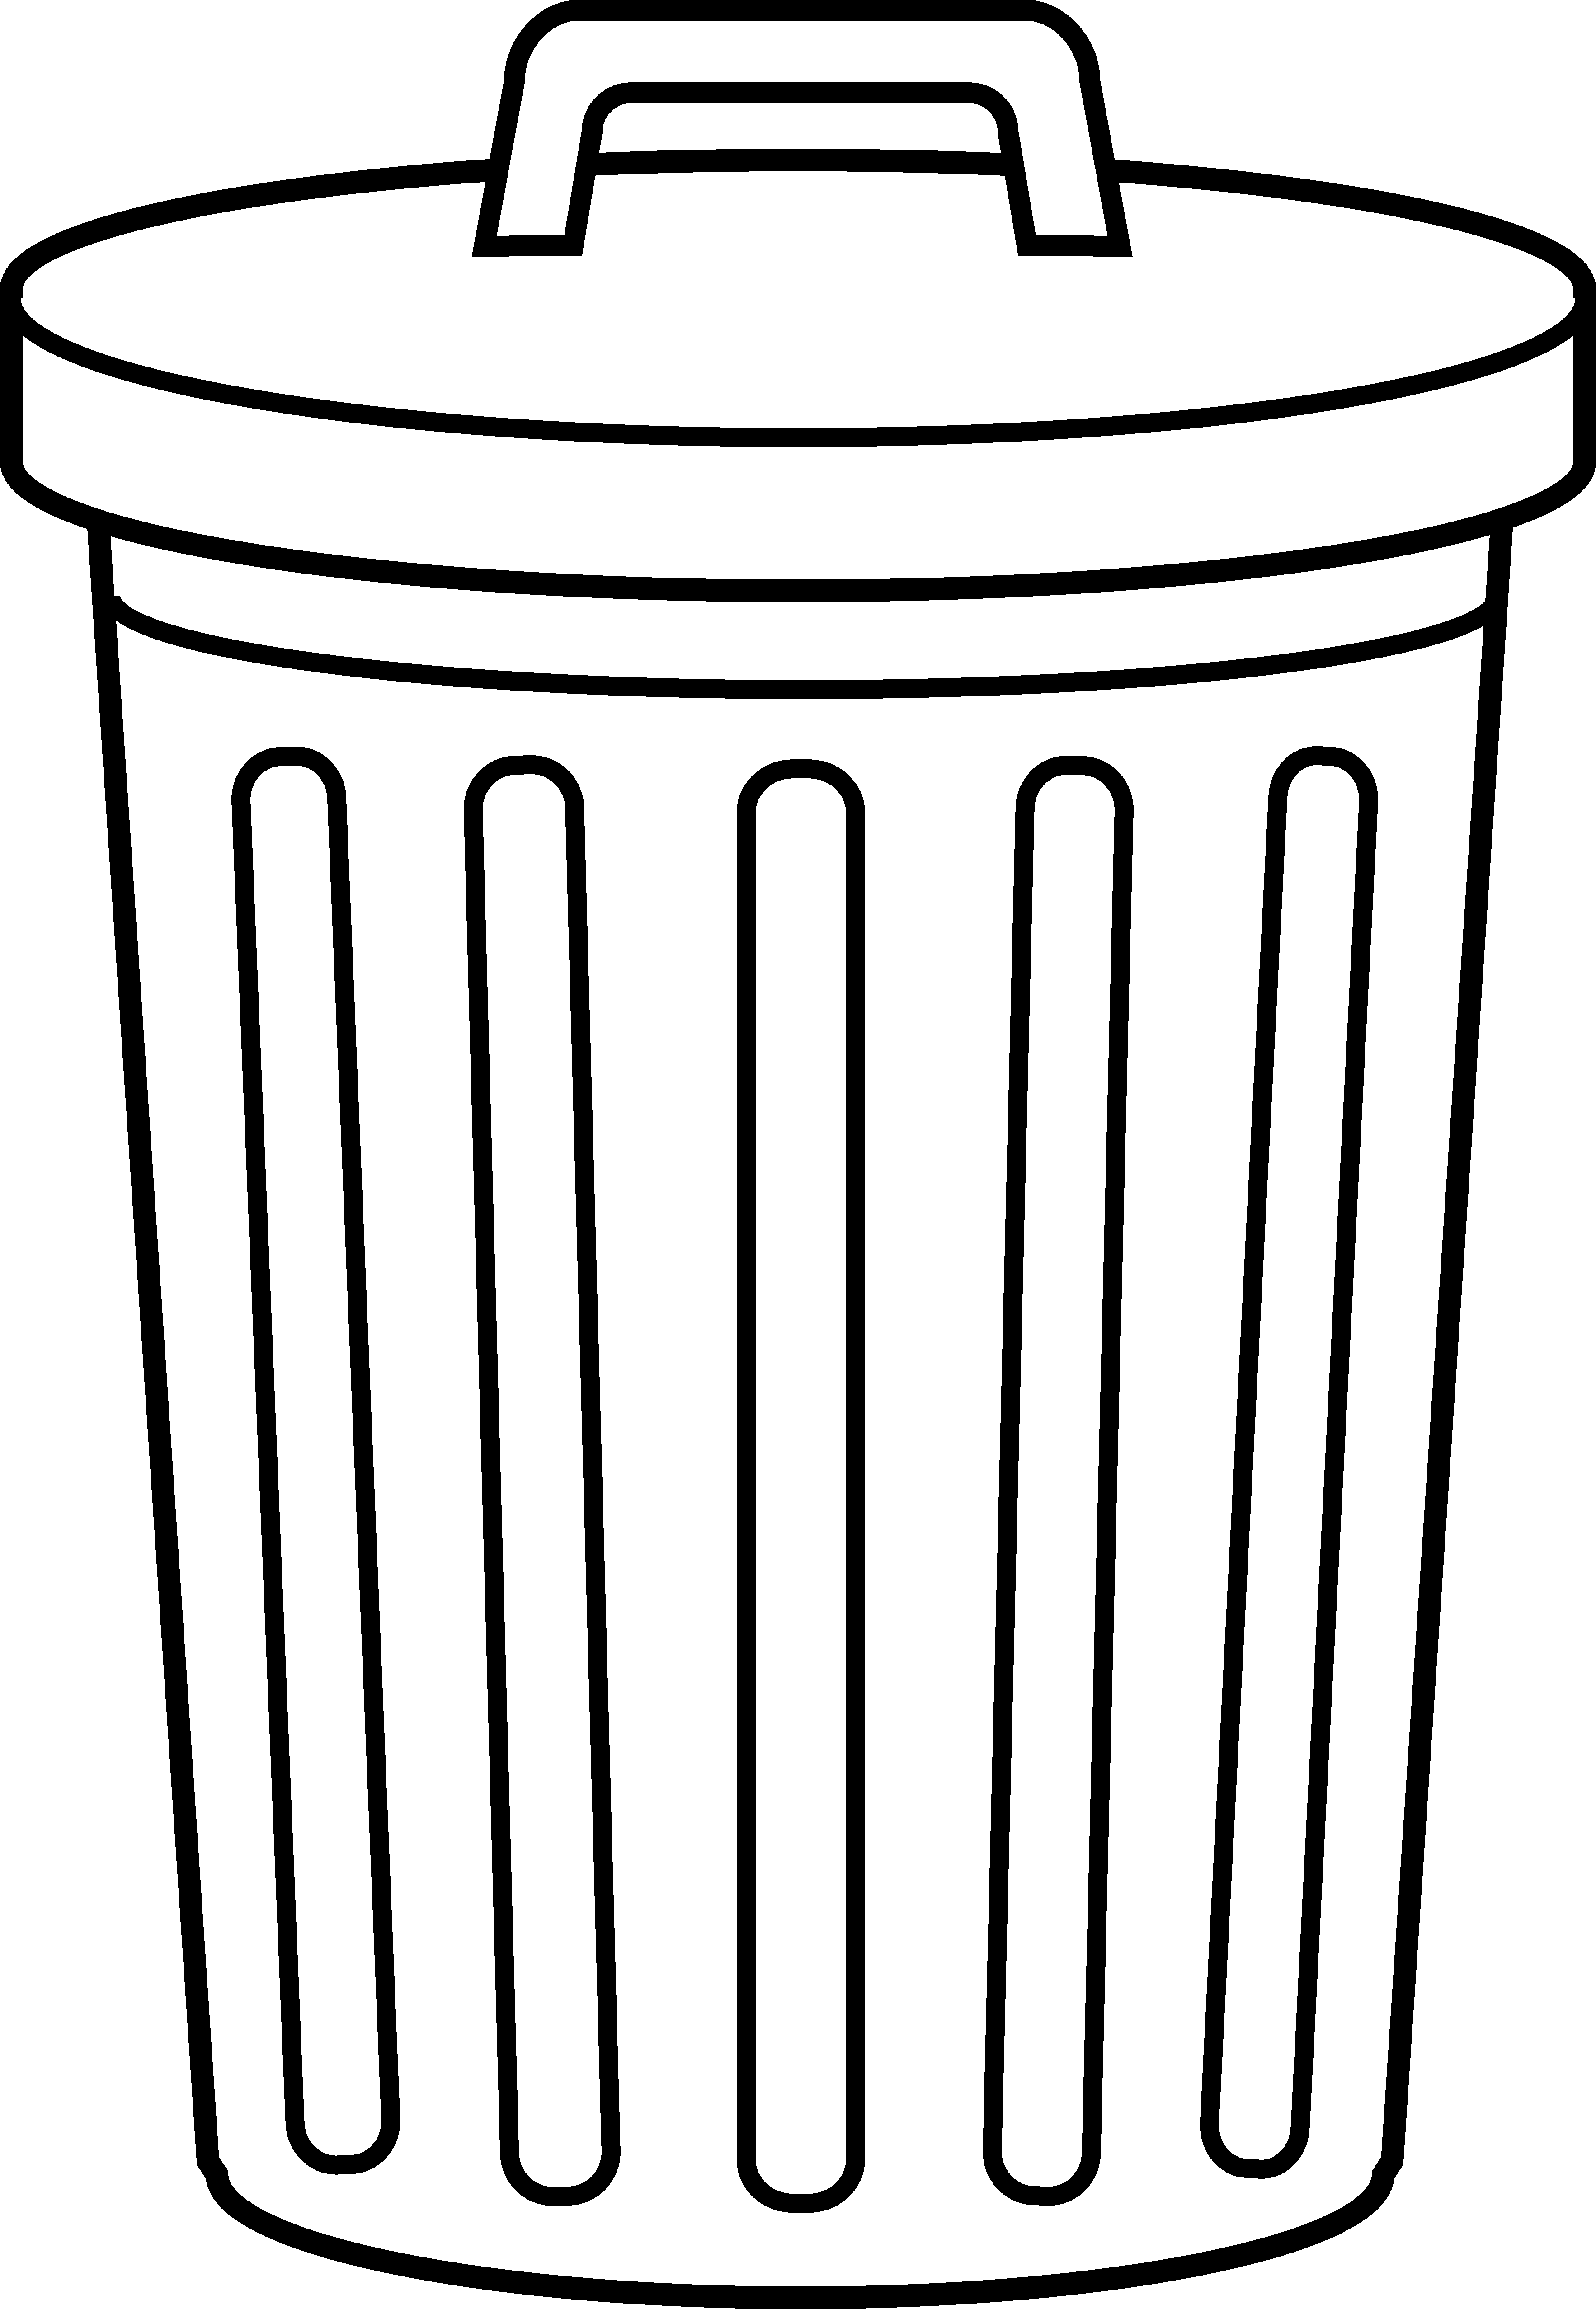 png royalty free stock Desktop backgrounds garbage can. Trashcan clipart odor